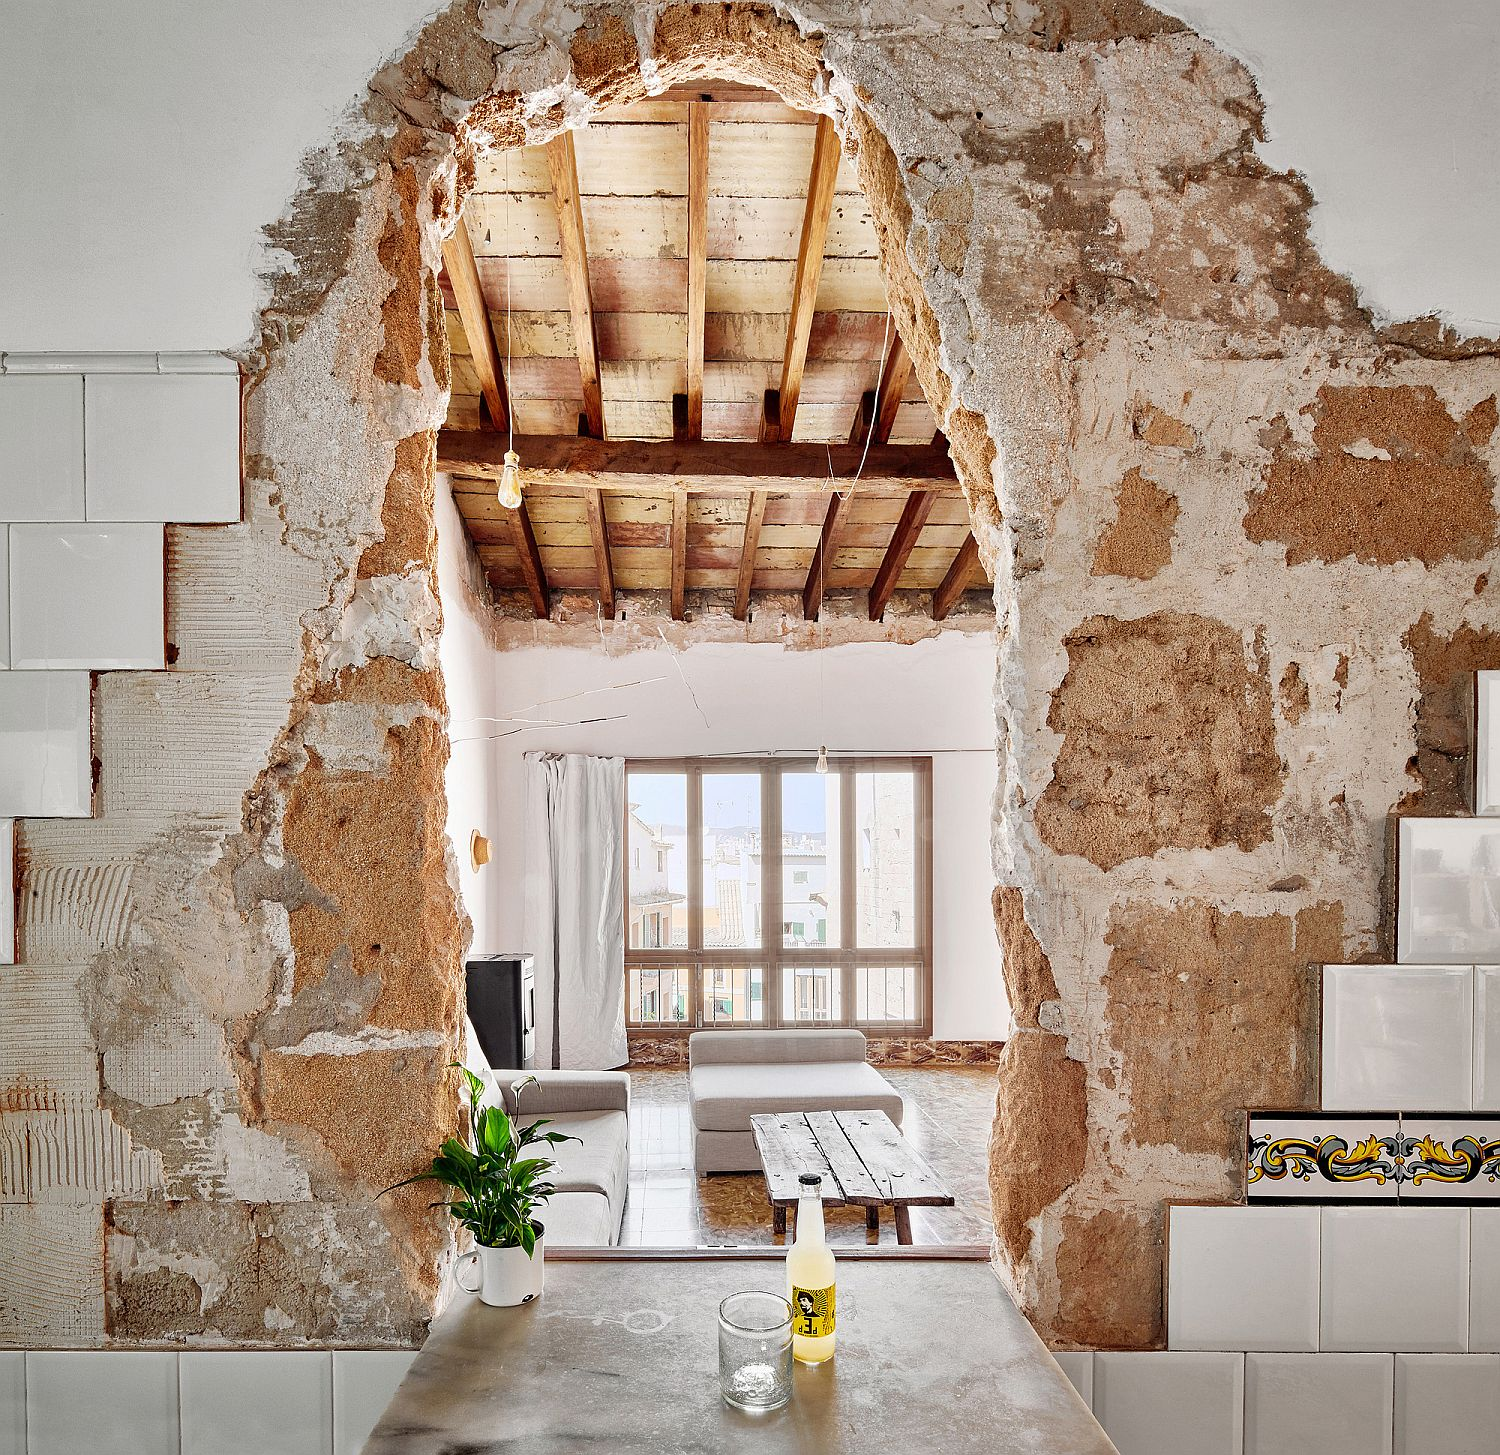 Refurbished and revitalized old homes in Palma, Spain